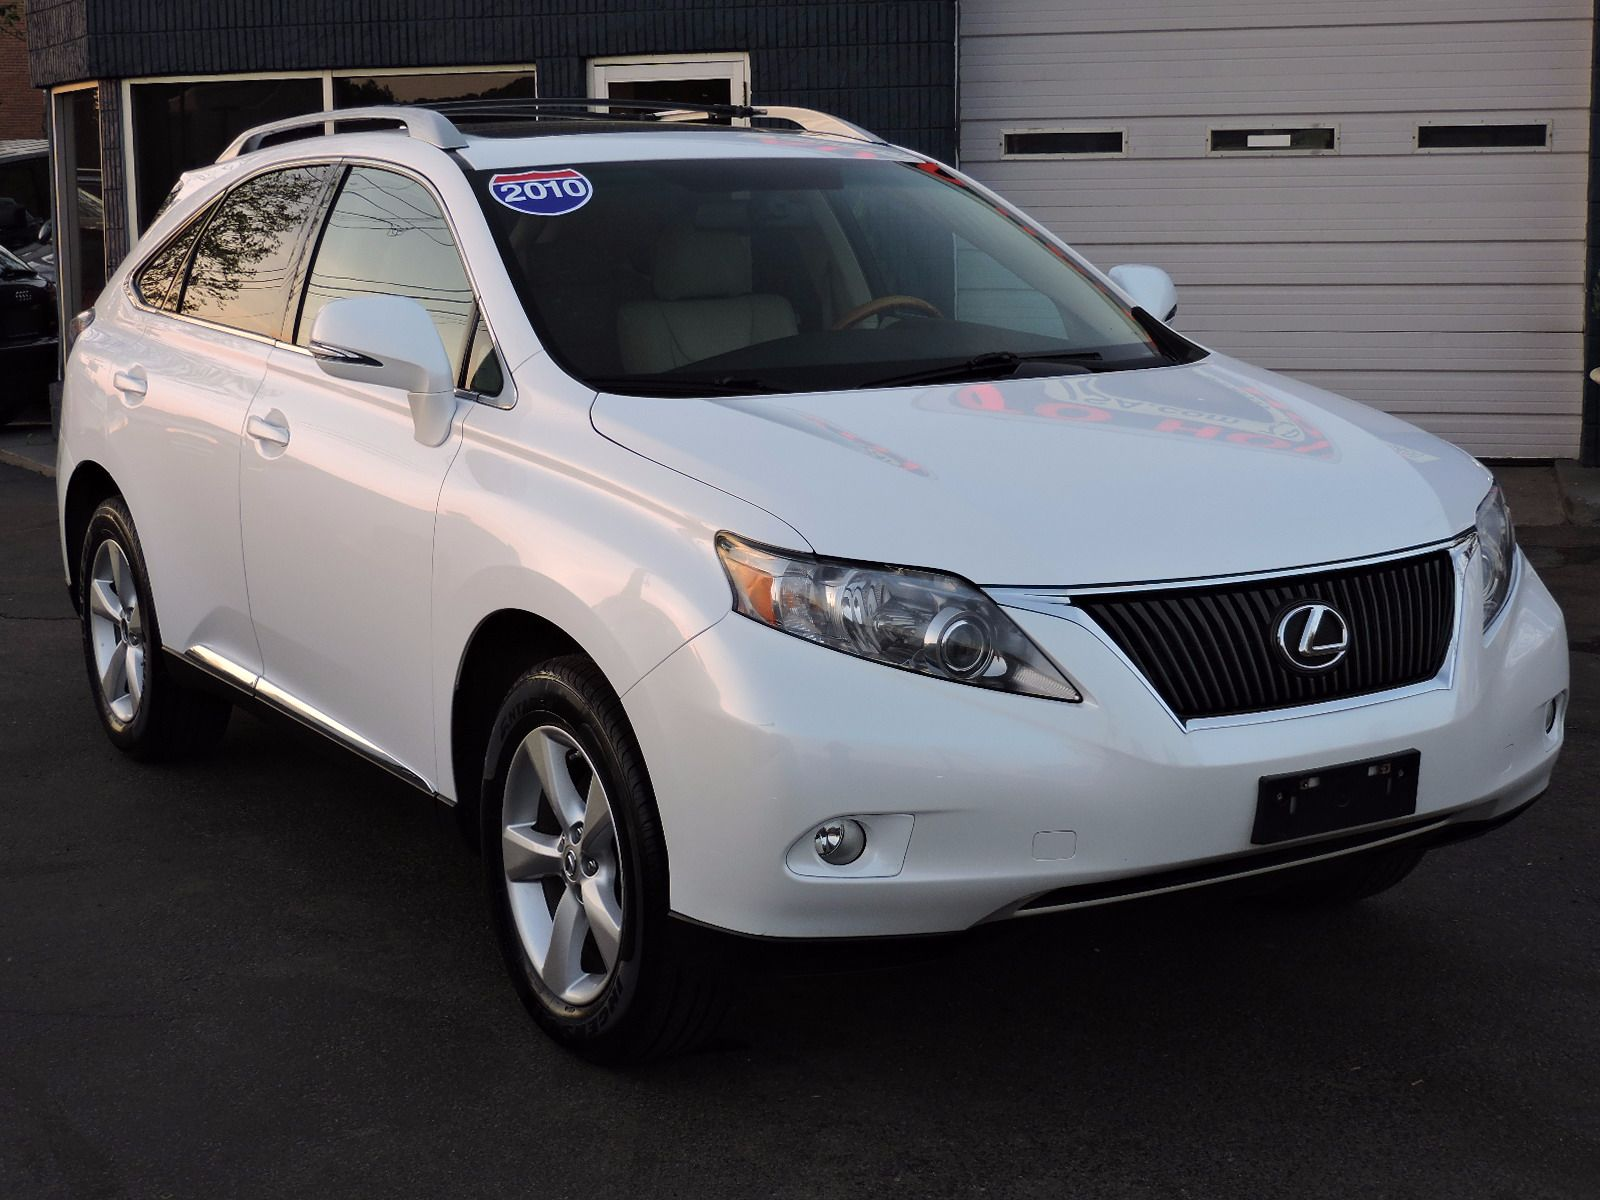 2010 Lexus RX 350 - All Wheel Drive - Navigation